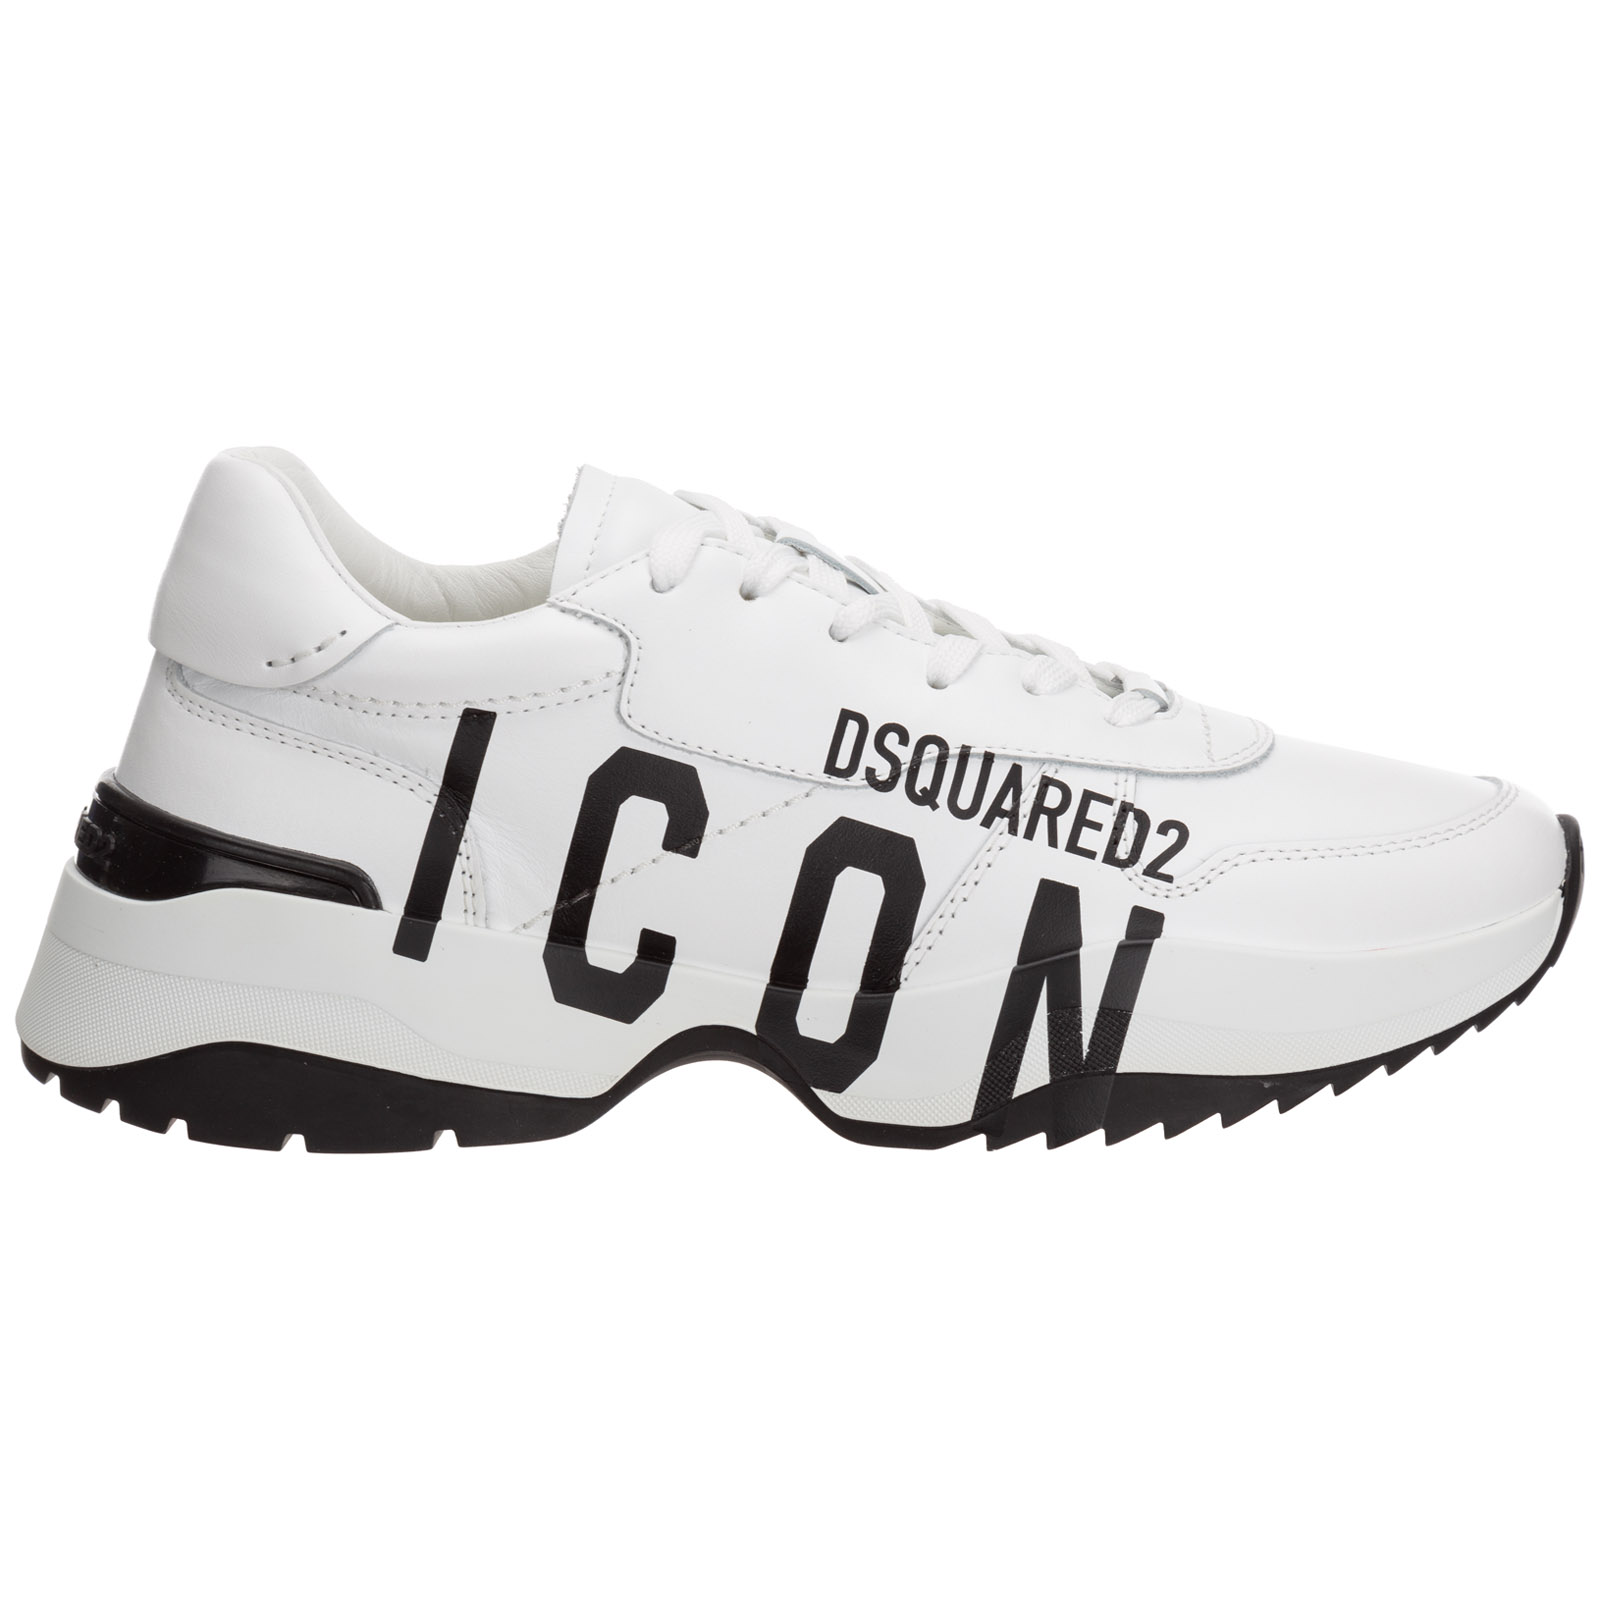 DSQUARED2 MEN'S SHOES LEATHER TRAINERS SNEAKERS D24 ICON